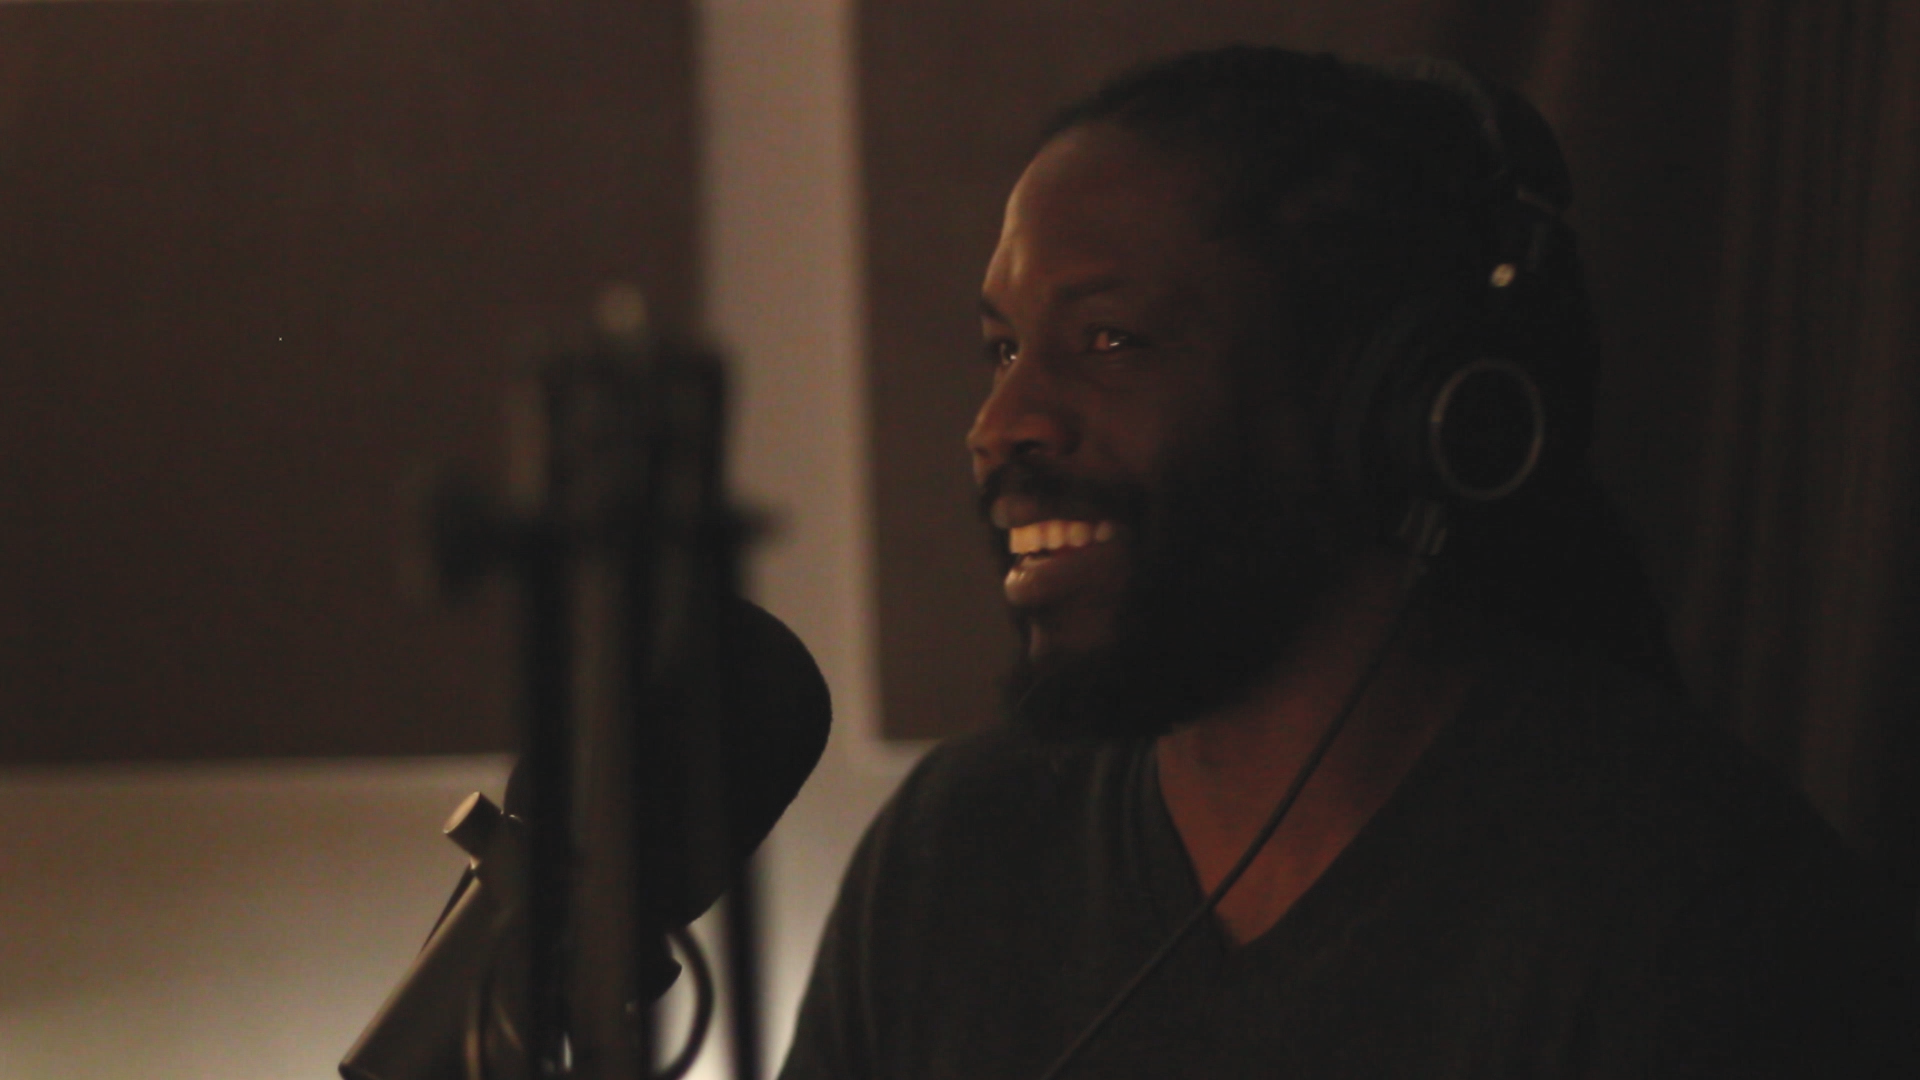 marcus whitney in studio.png